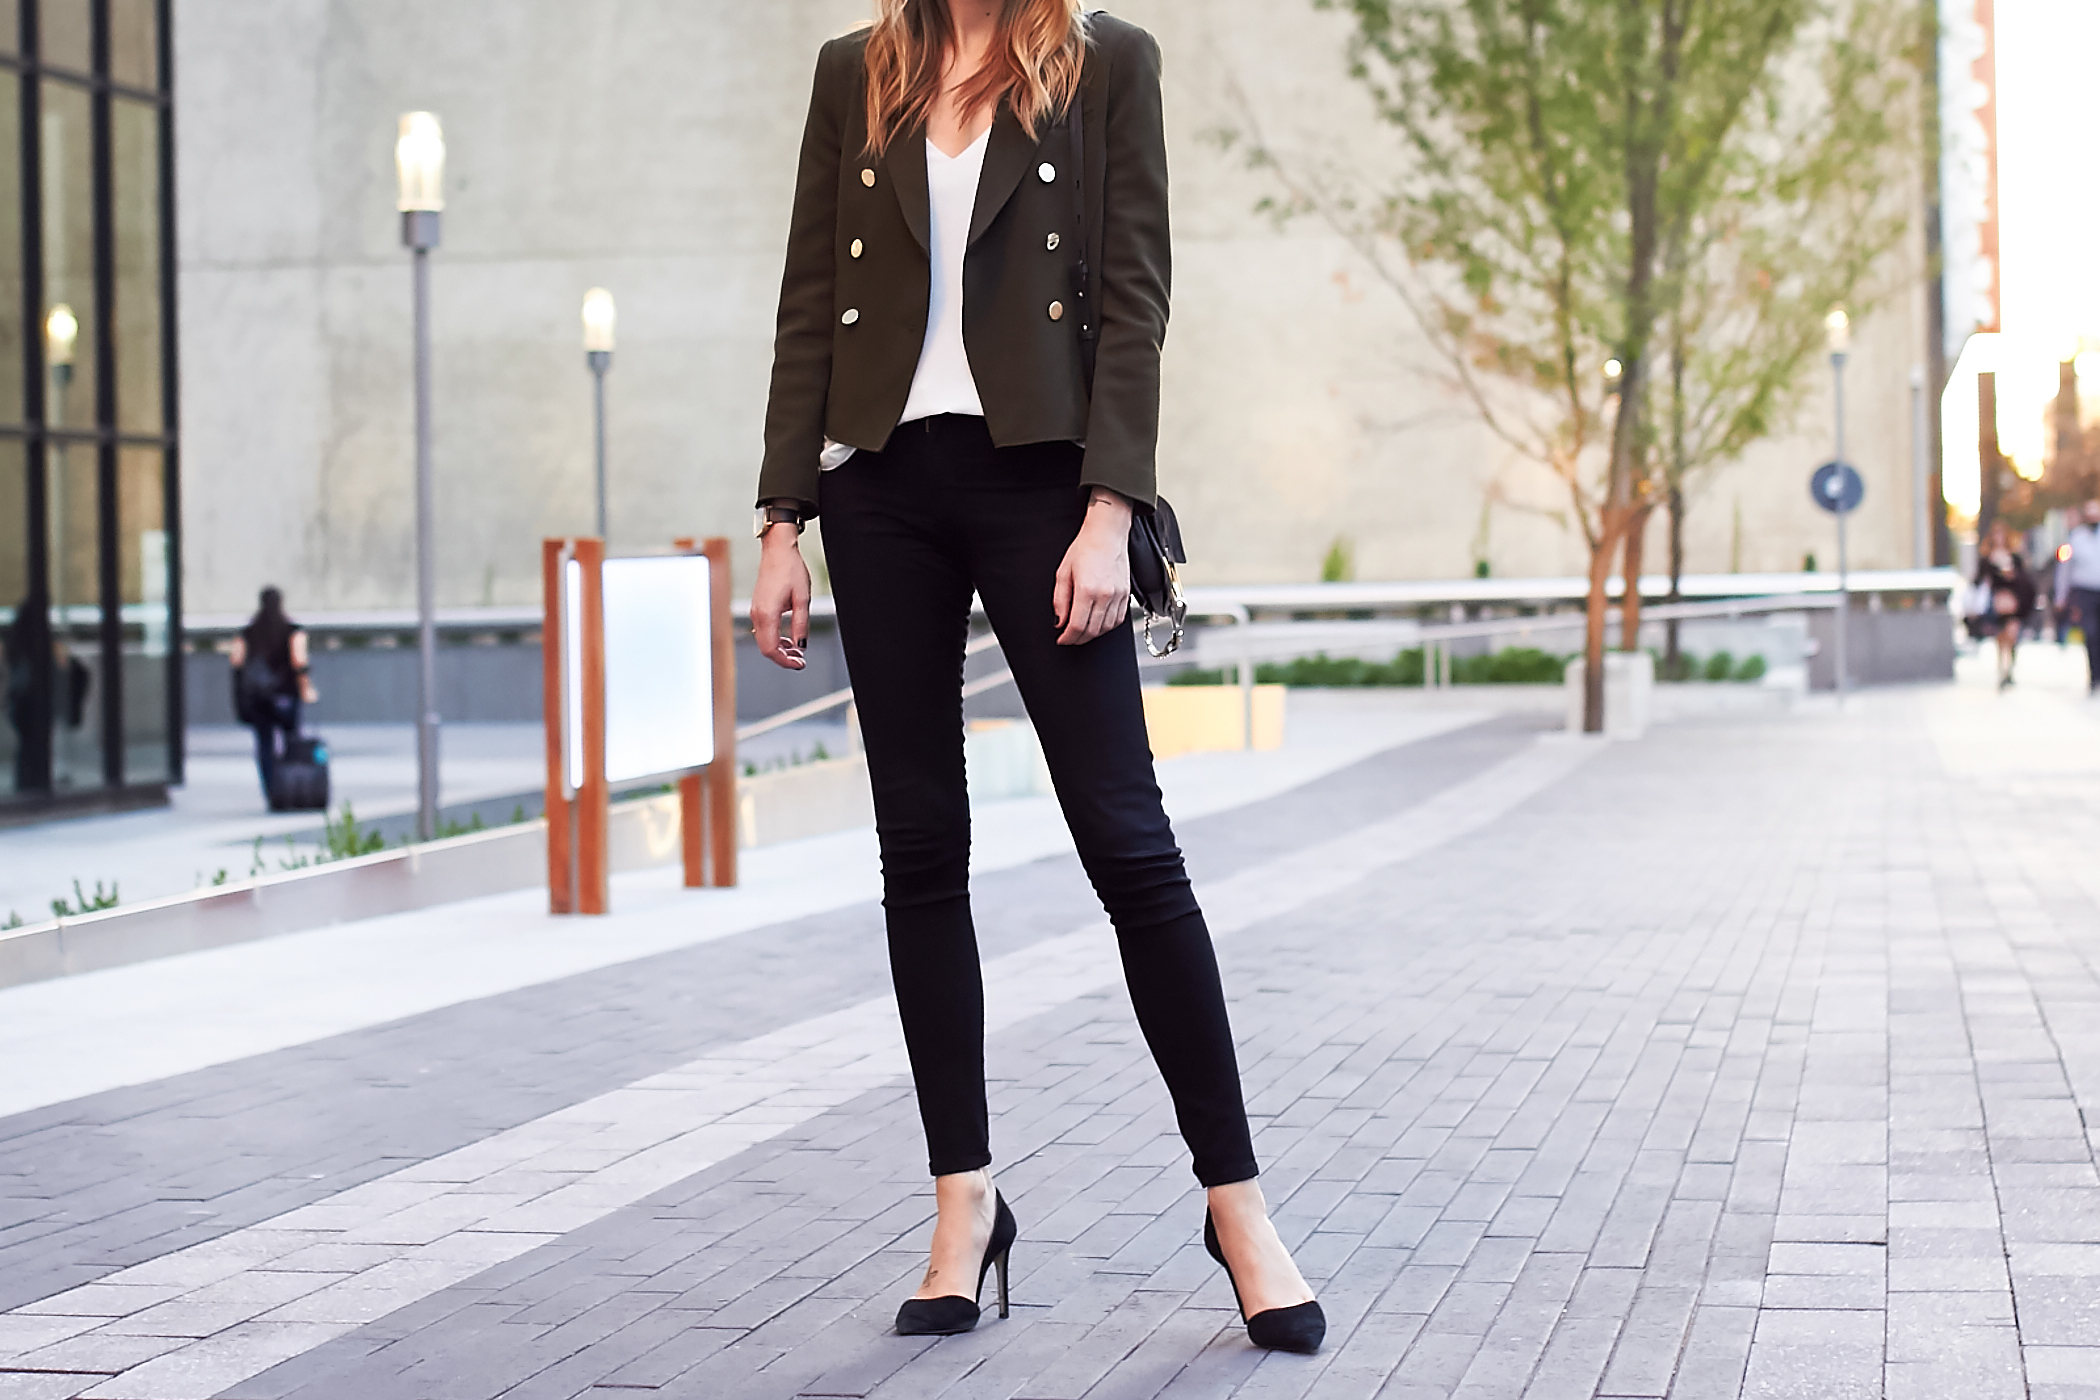 fashion-jackson-topshop-green-military-blazer-black-skinny-jeans-black-pumps-white-tank